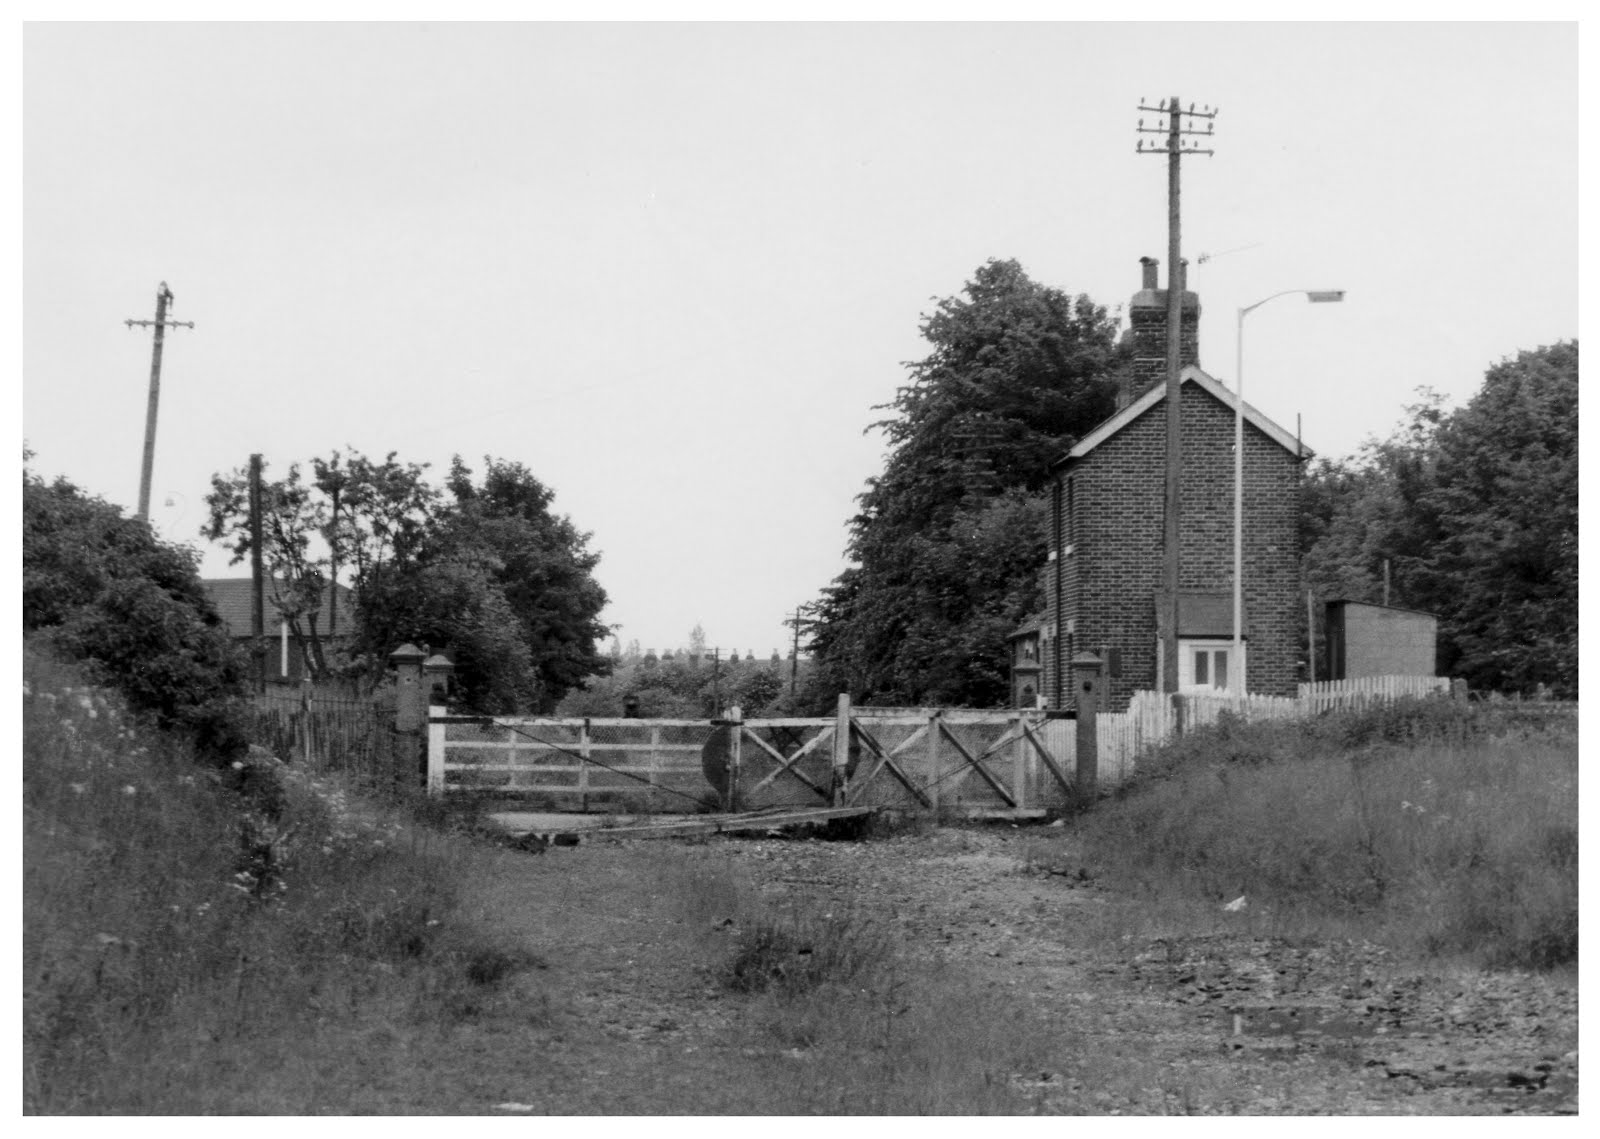 Brockhurst Crossing